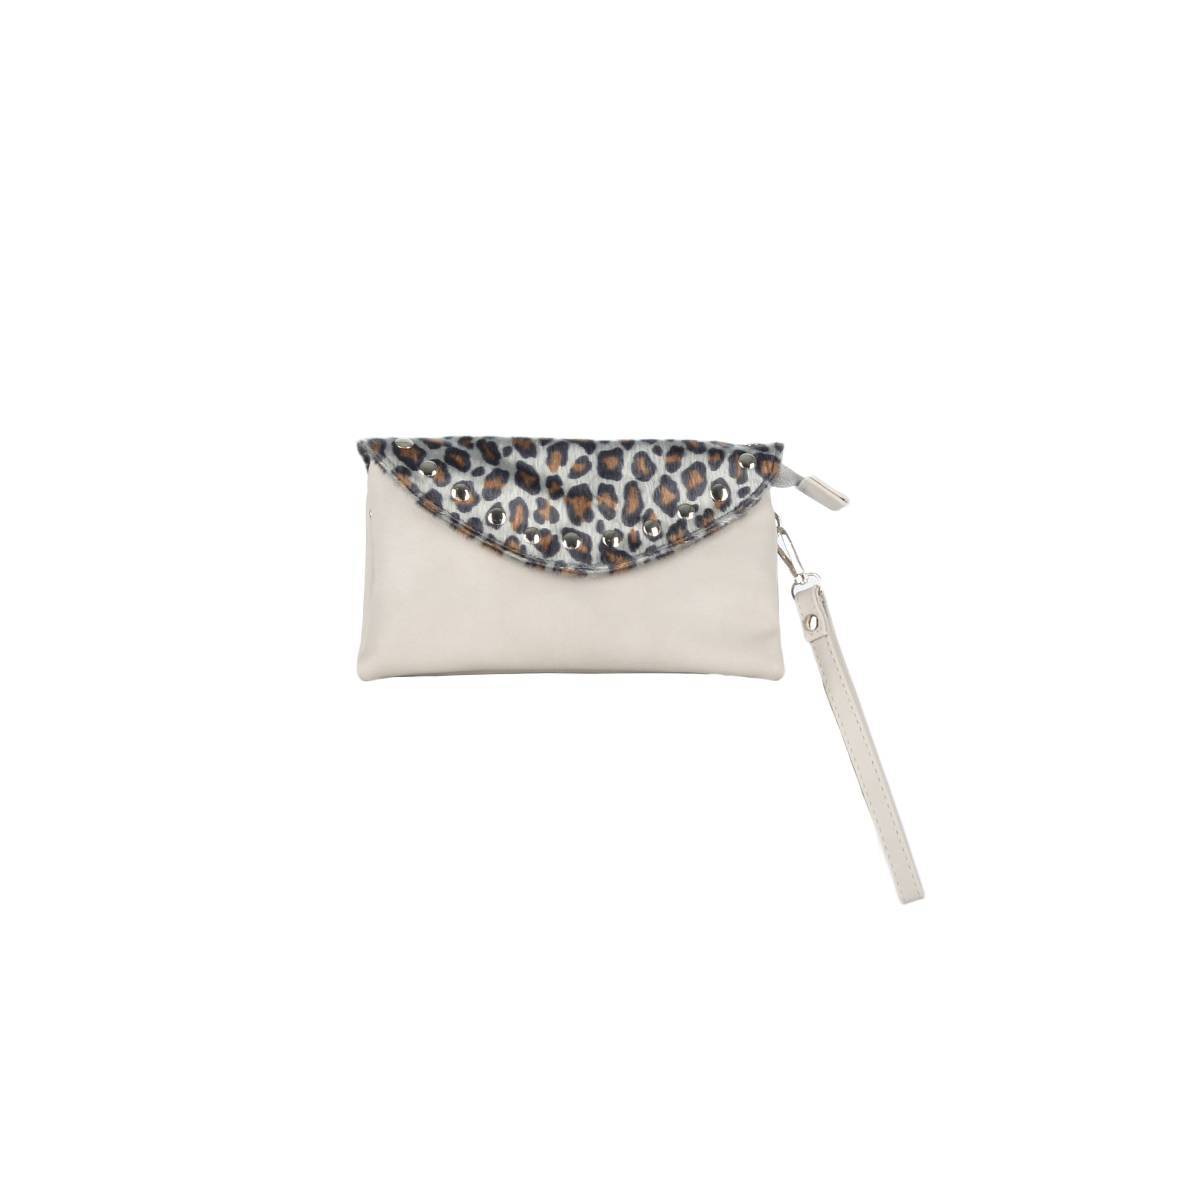 Sunset Fashion P035 BAG ANIMAL PRINT Grijs